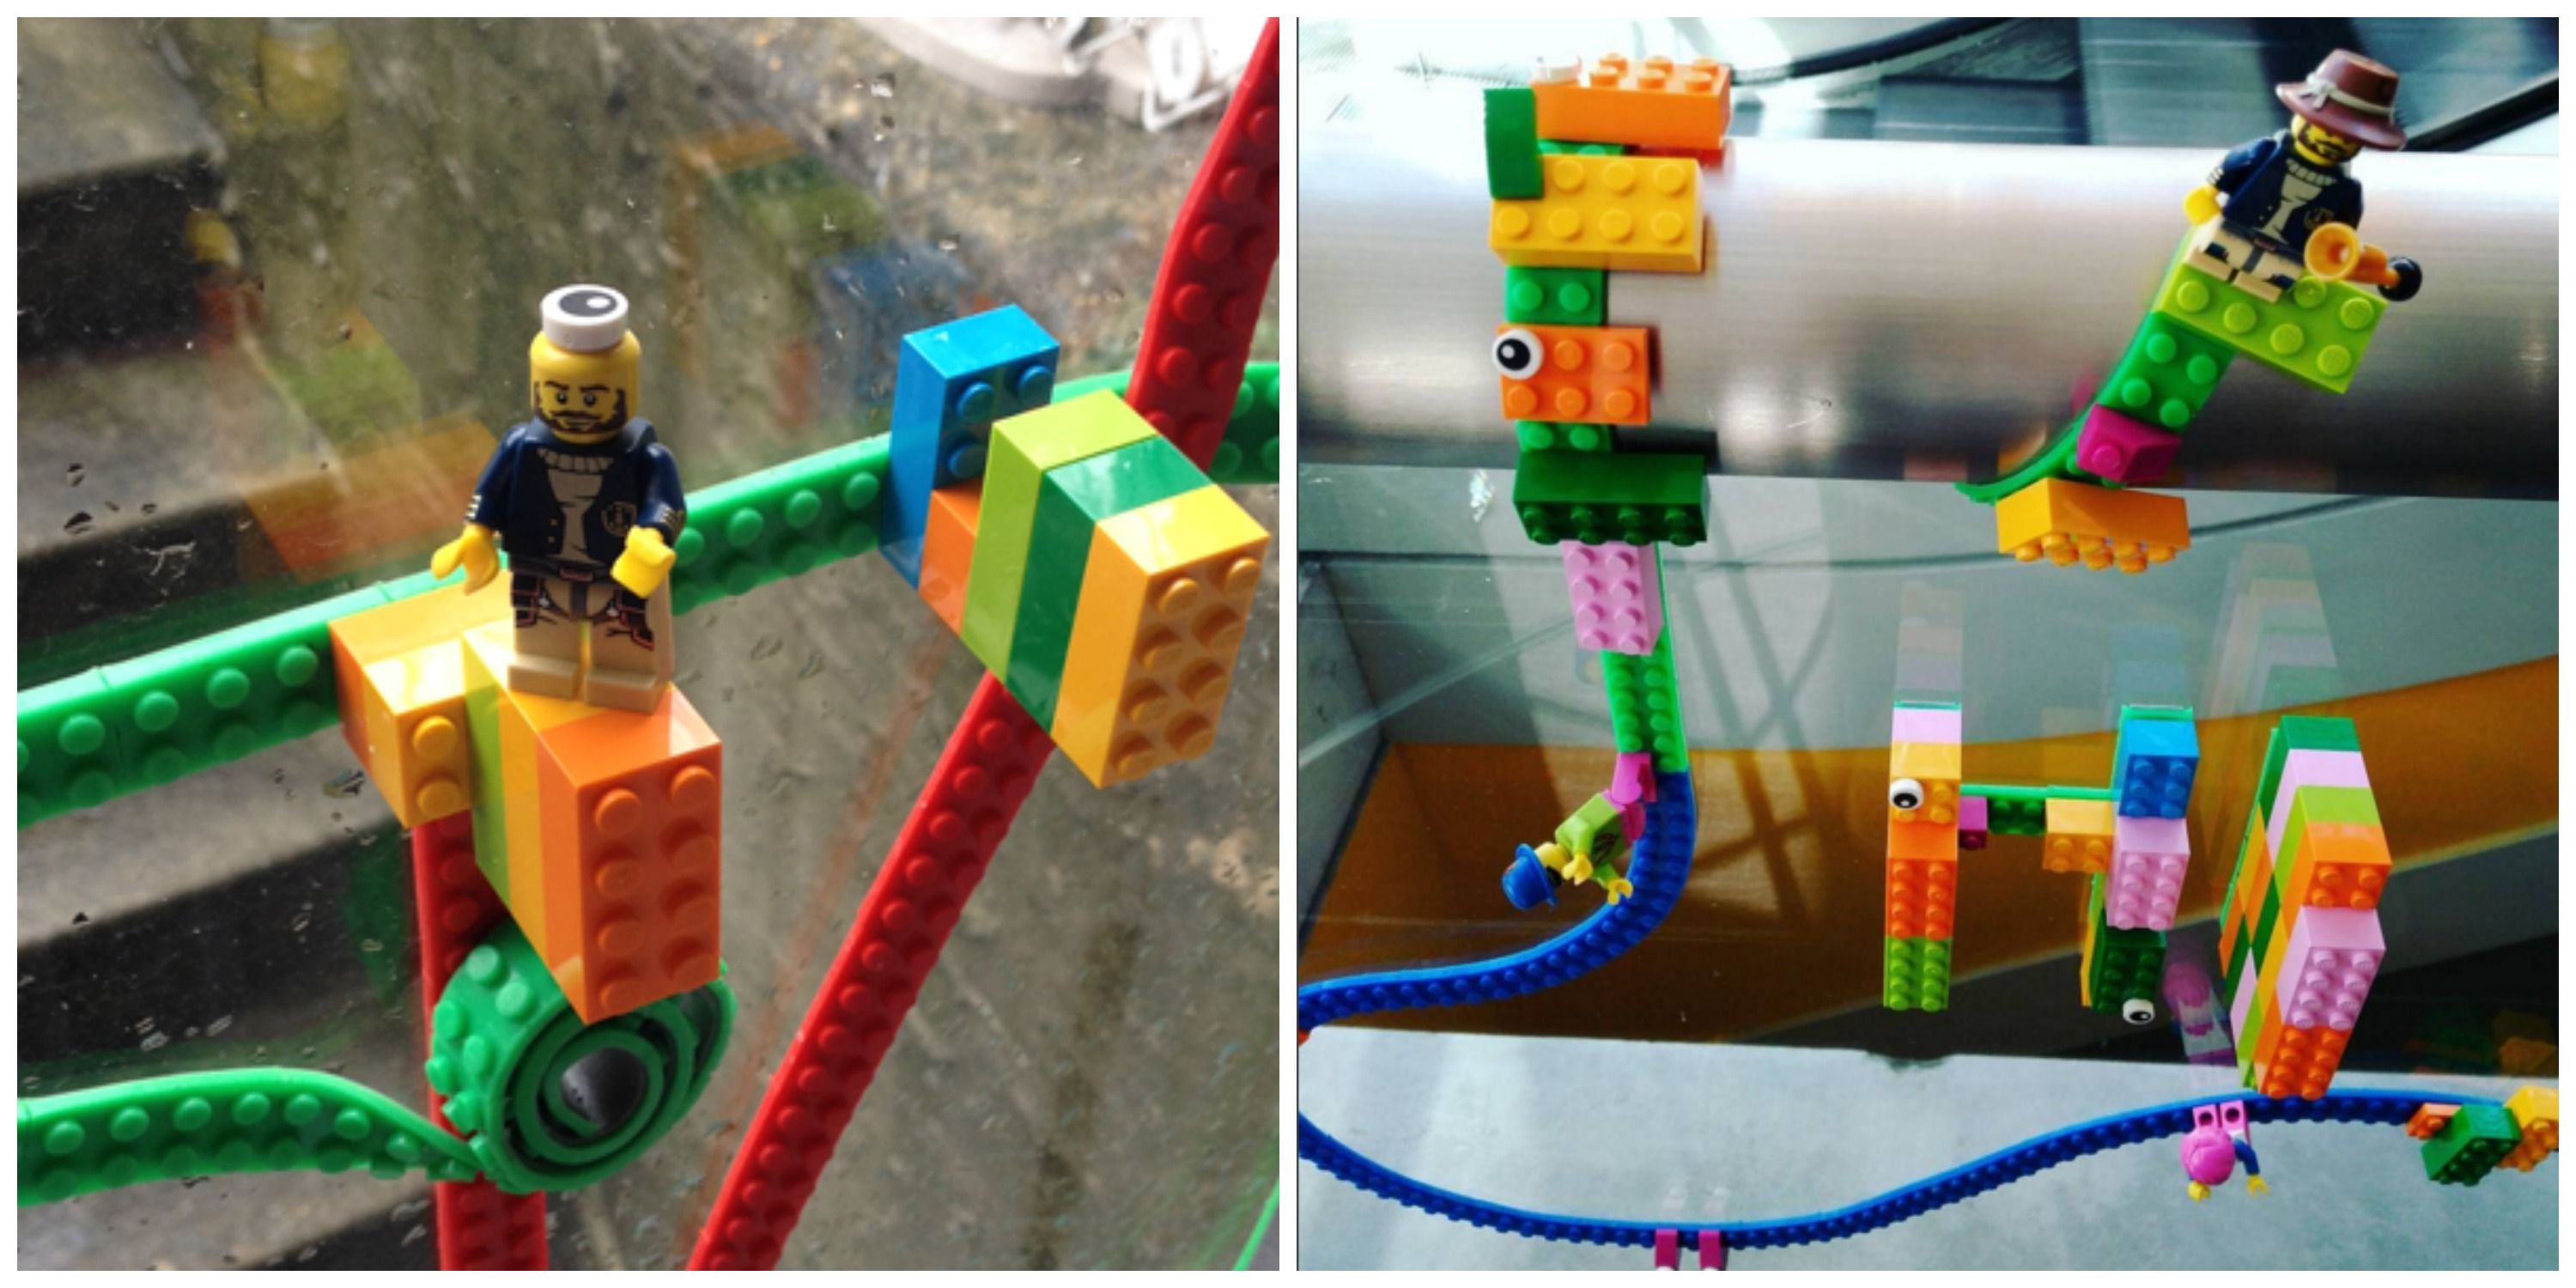 Get Your Kid Lego Tape And Watch Him Build A World On The Walls